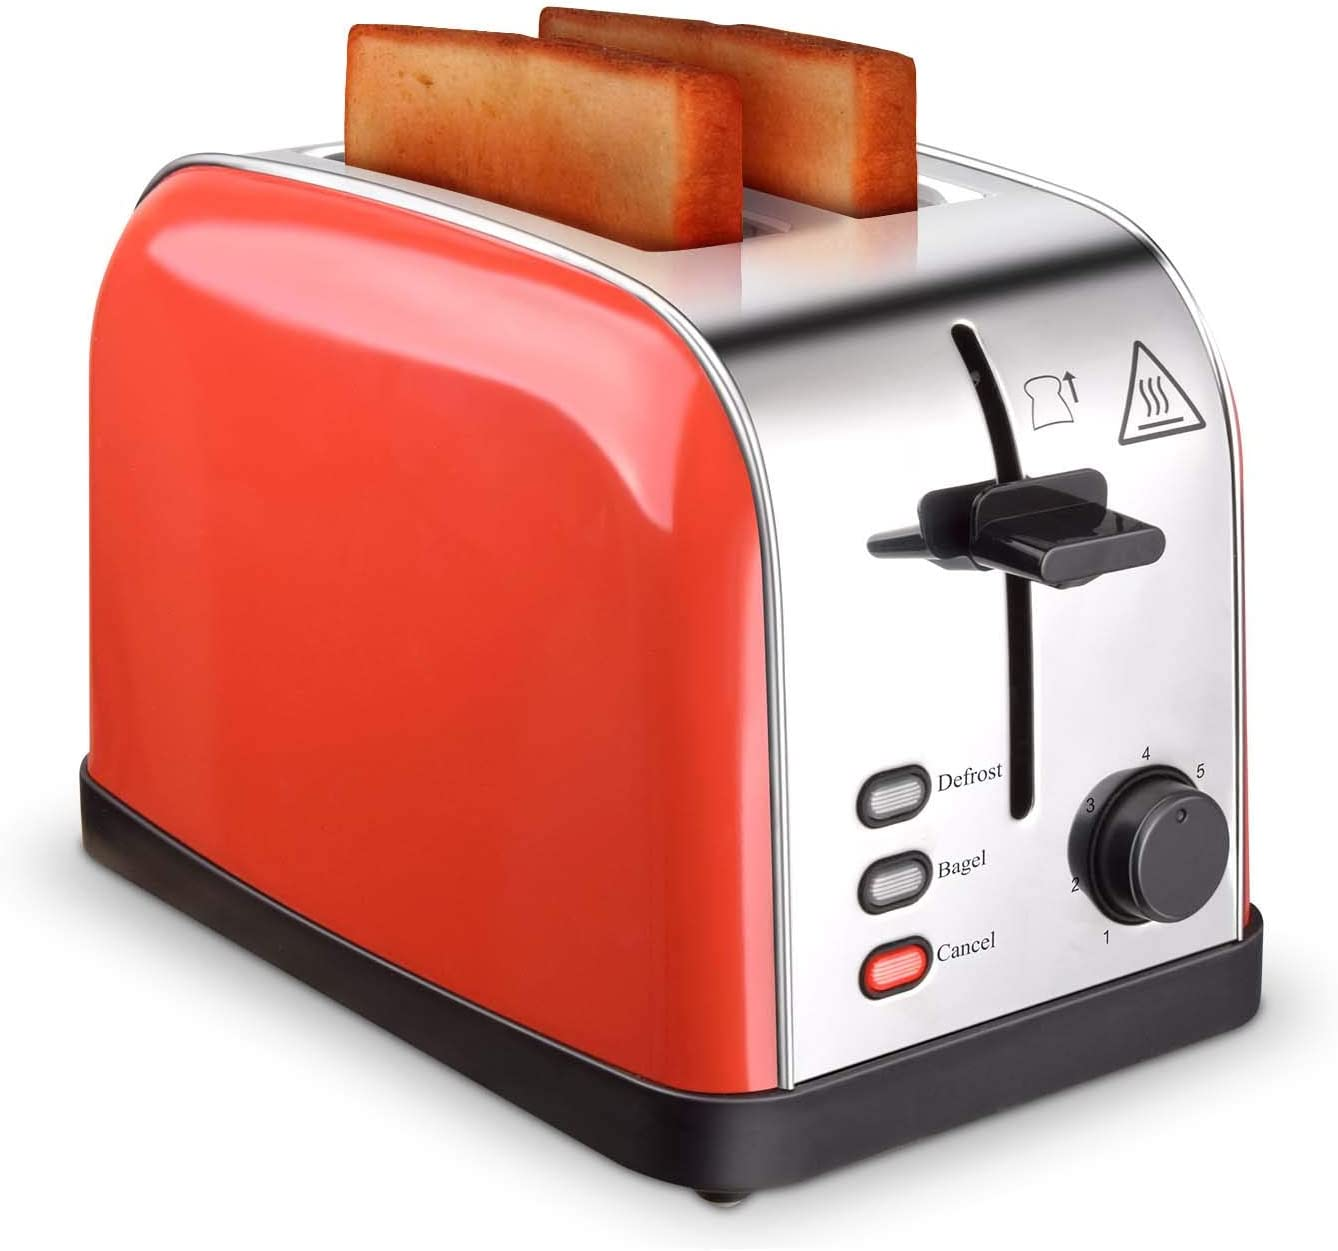 Toaster 2 Slice Toasters Best Rated Prime Extra Wide Slots Compact Stainless Steel with Defrost Reheat Cancel Button High Lift Lever Toaster's Removable Crumb Tray Quickly Toast for Bread&Bagel